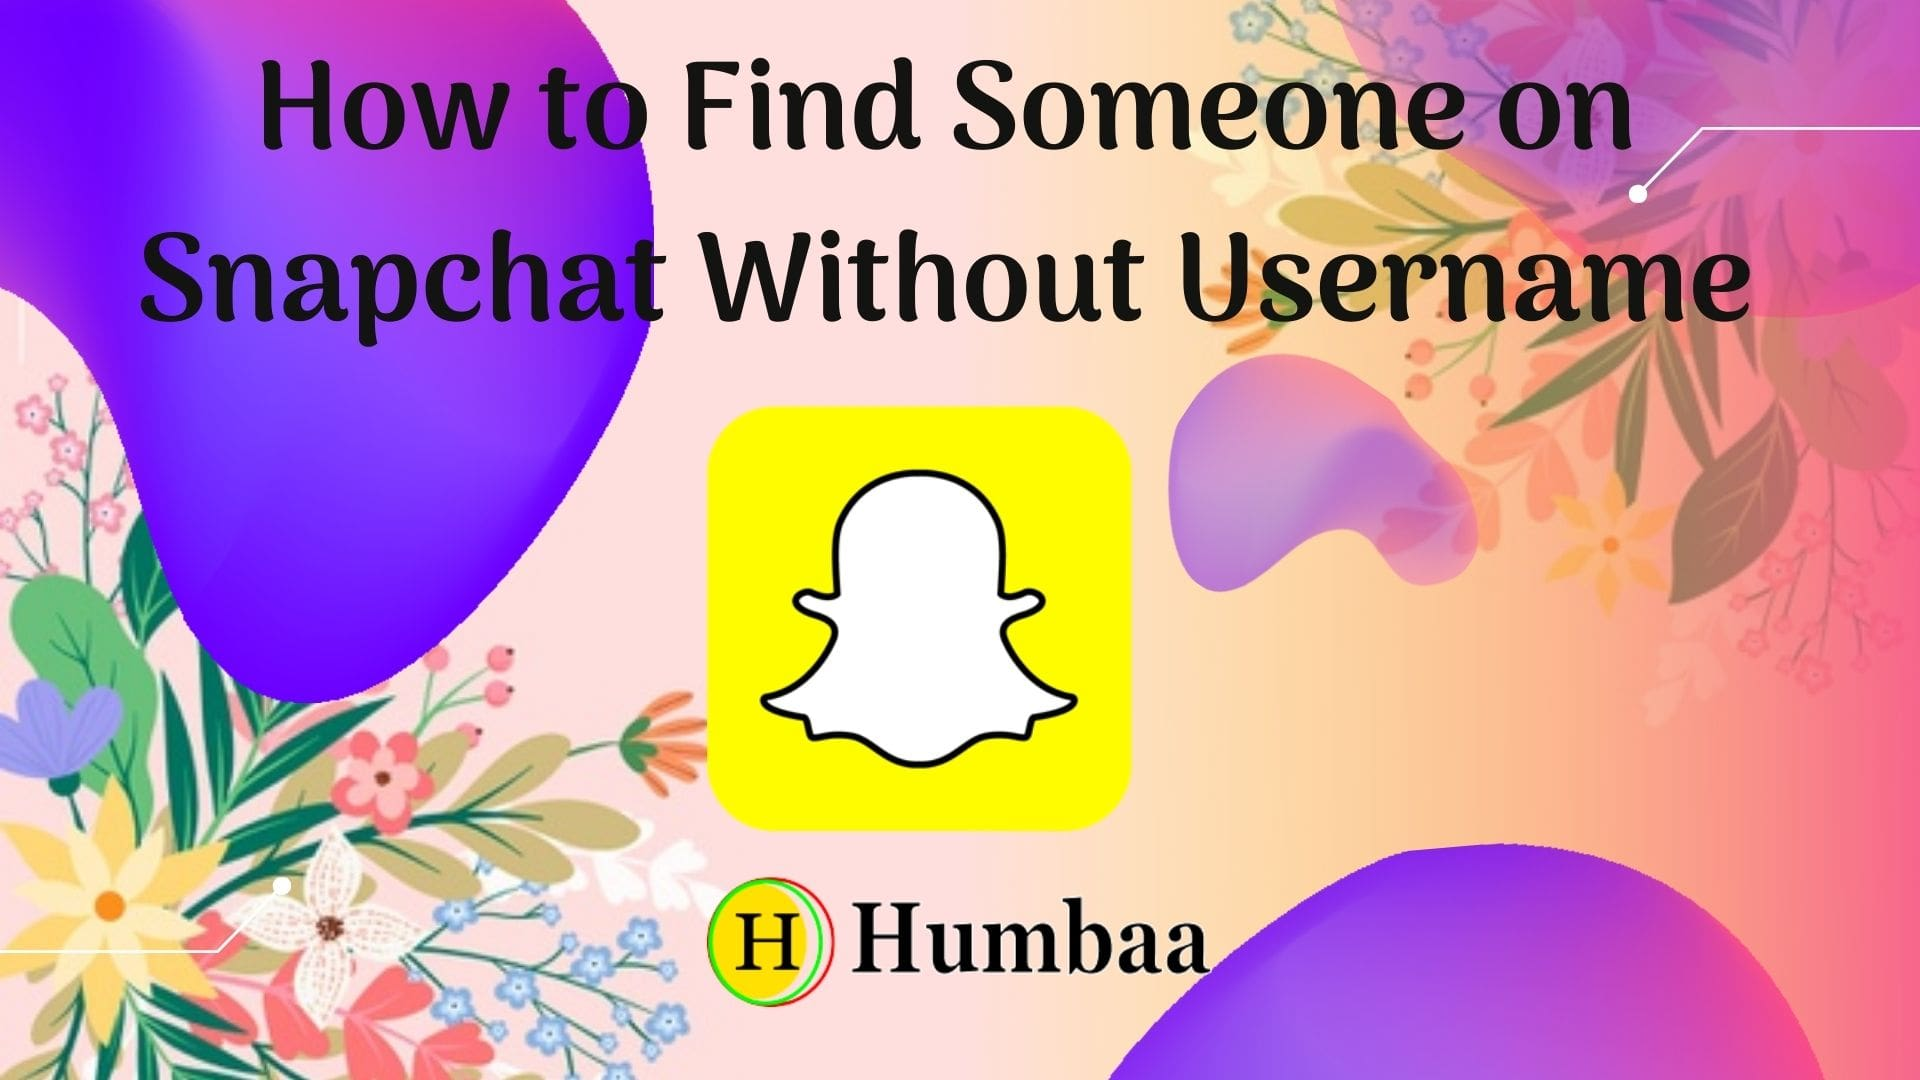 Find Someone on Snapchat Without Username